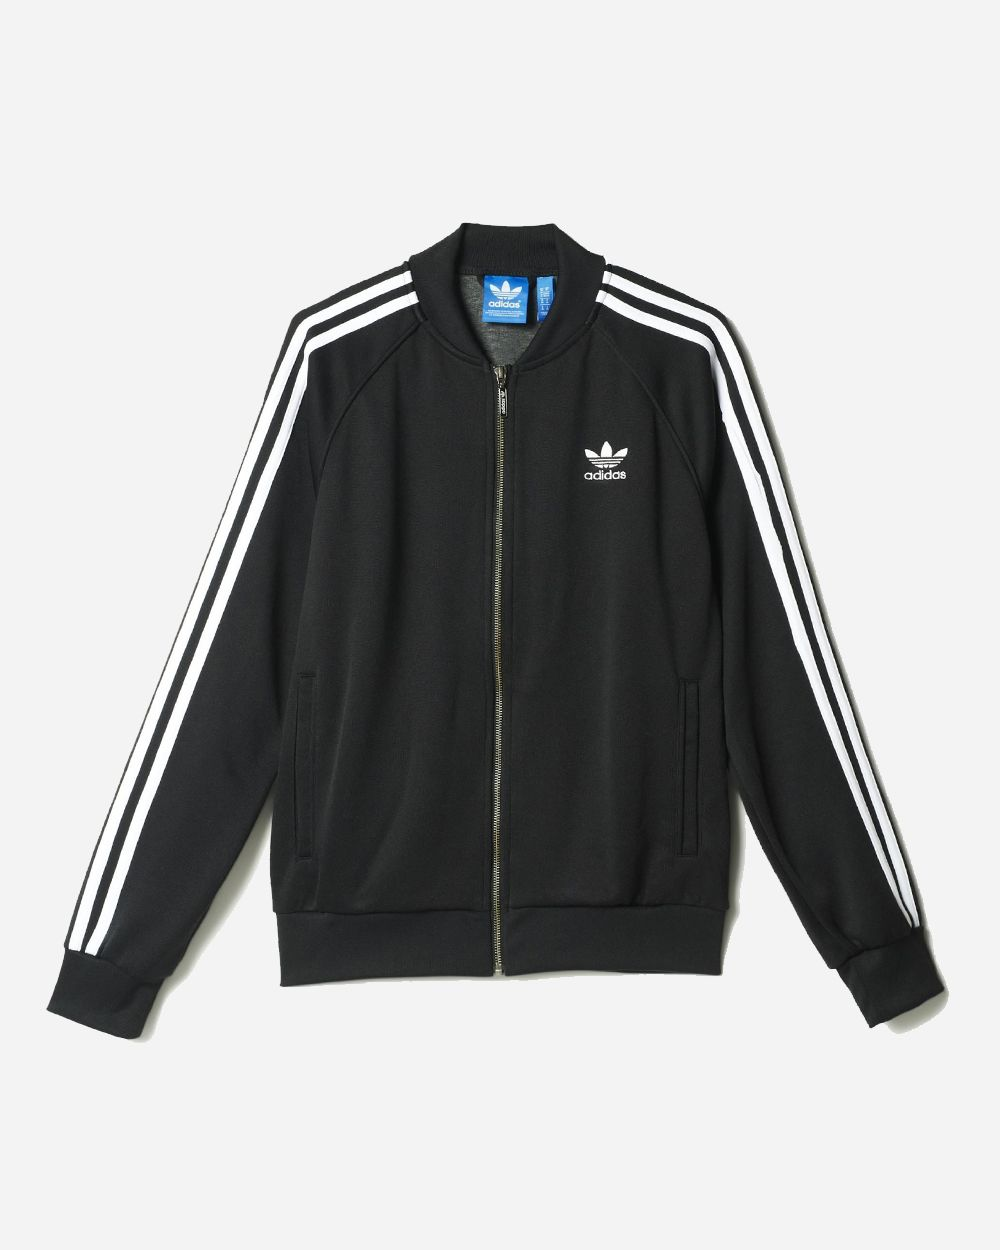 Veste adidas original superstar homme